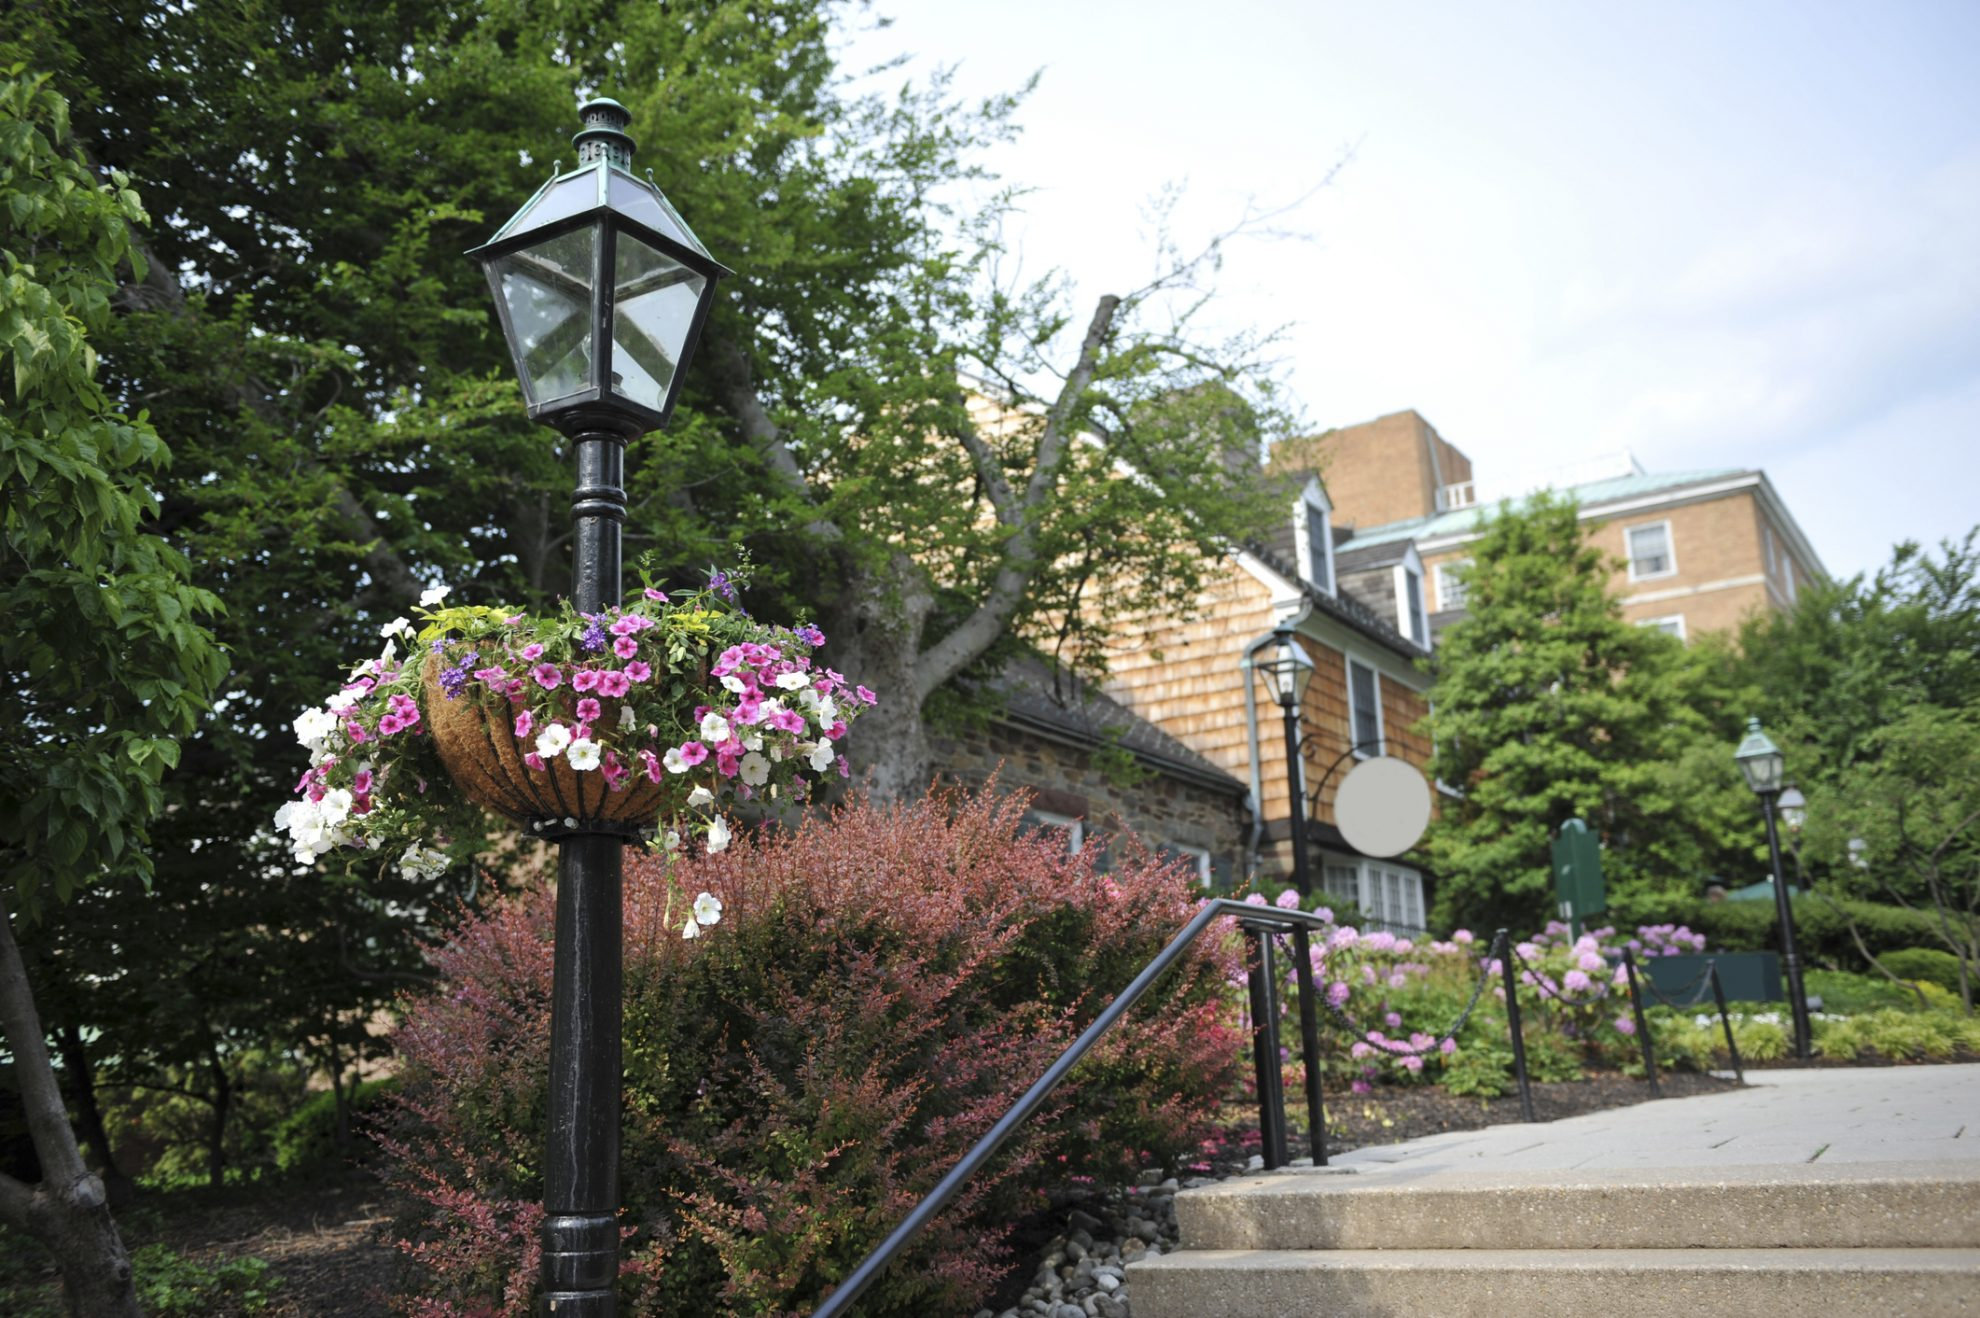 Street lamp and hanging flowers in Princeton, New Jersey